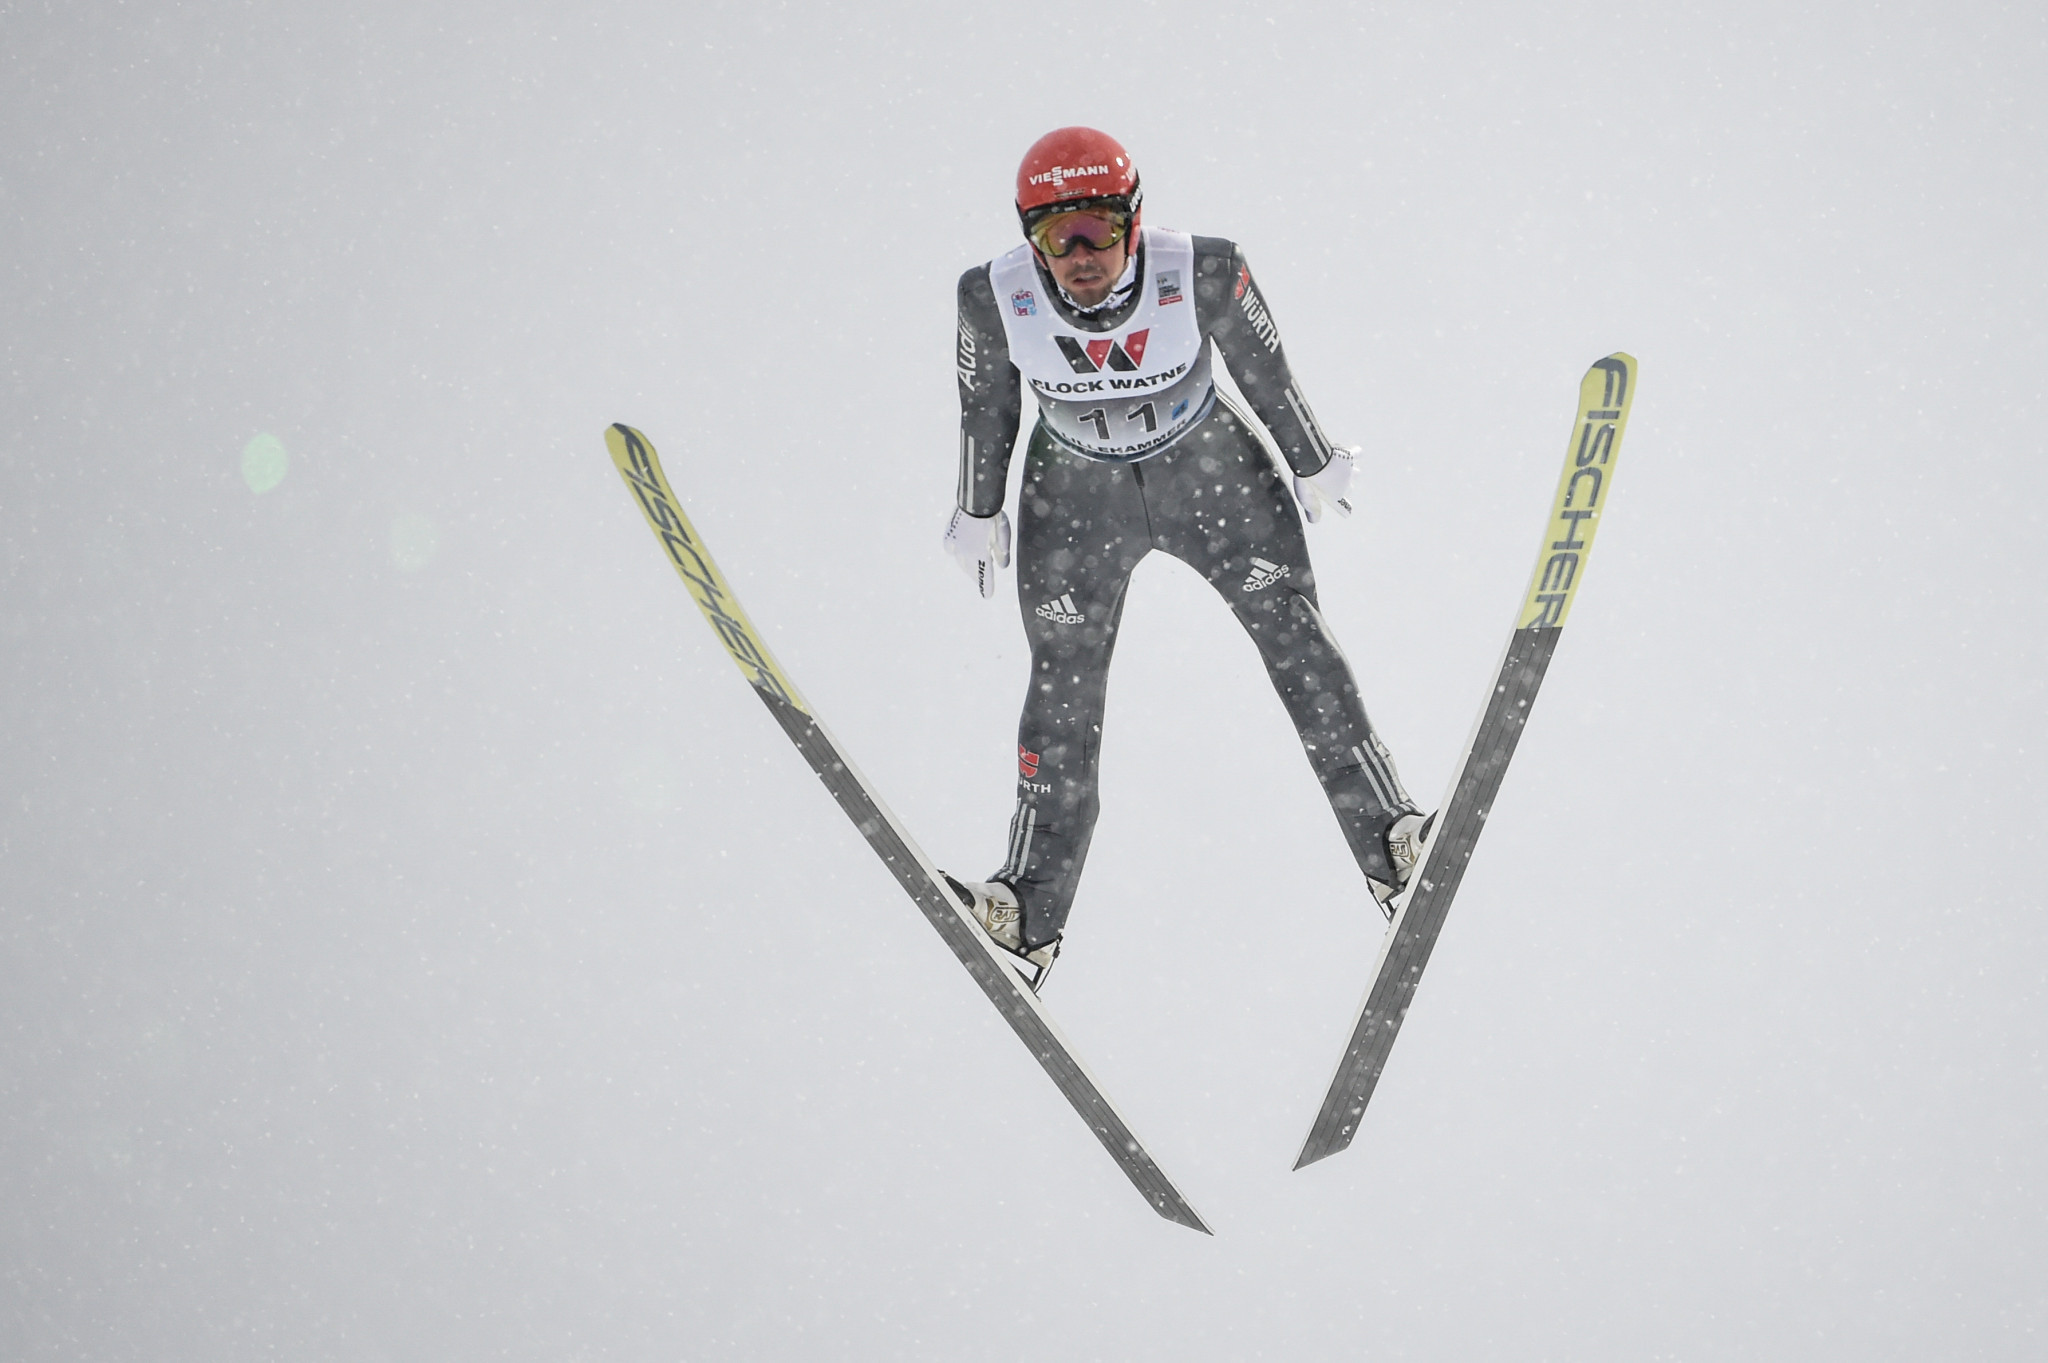 Men's Nordic combined has been held at the Winter Olympics since Chamonix 1924 but the women's discipline is not currently on the programme and failed in a bid for Beijing 2022 ©Getty Images